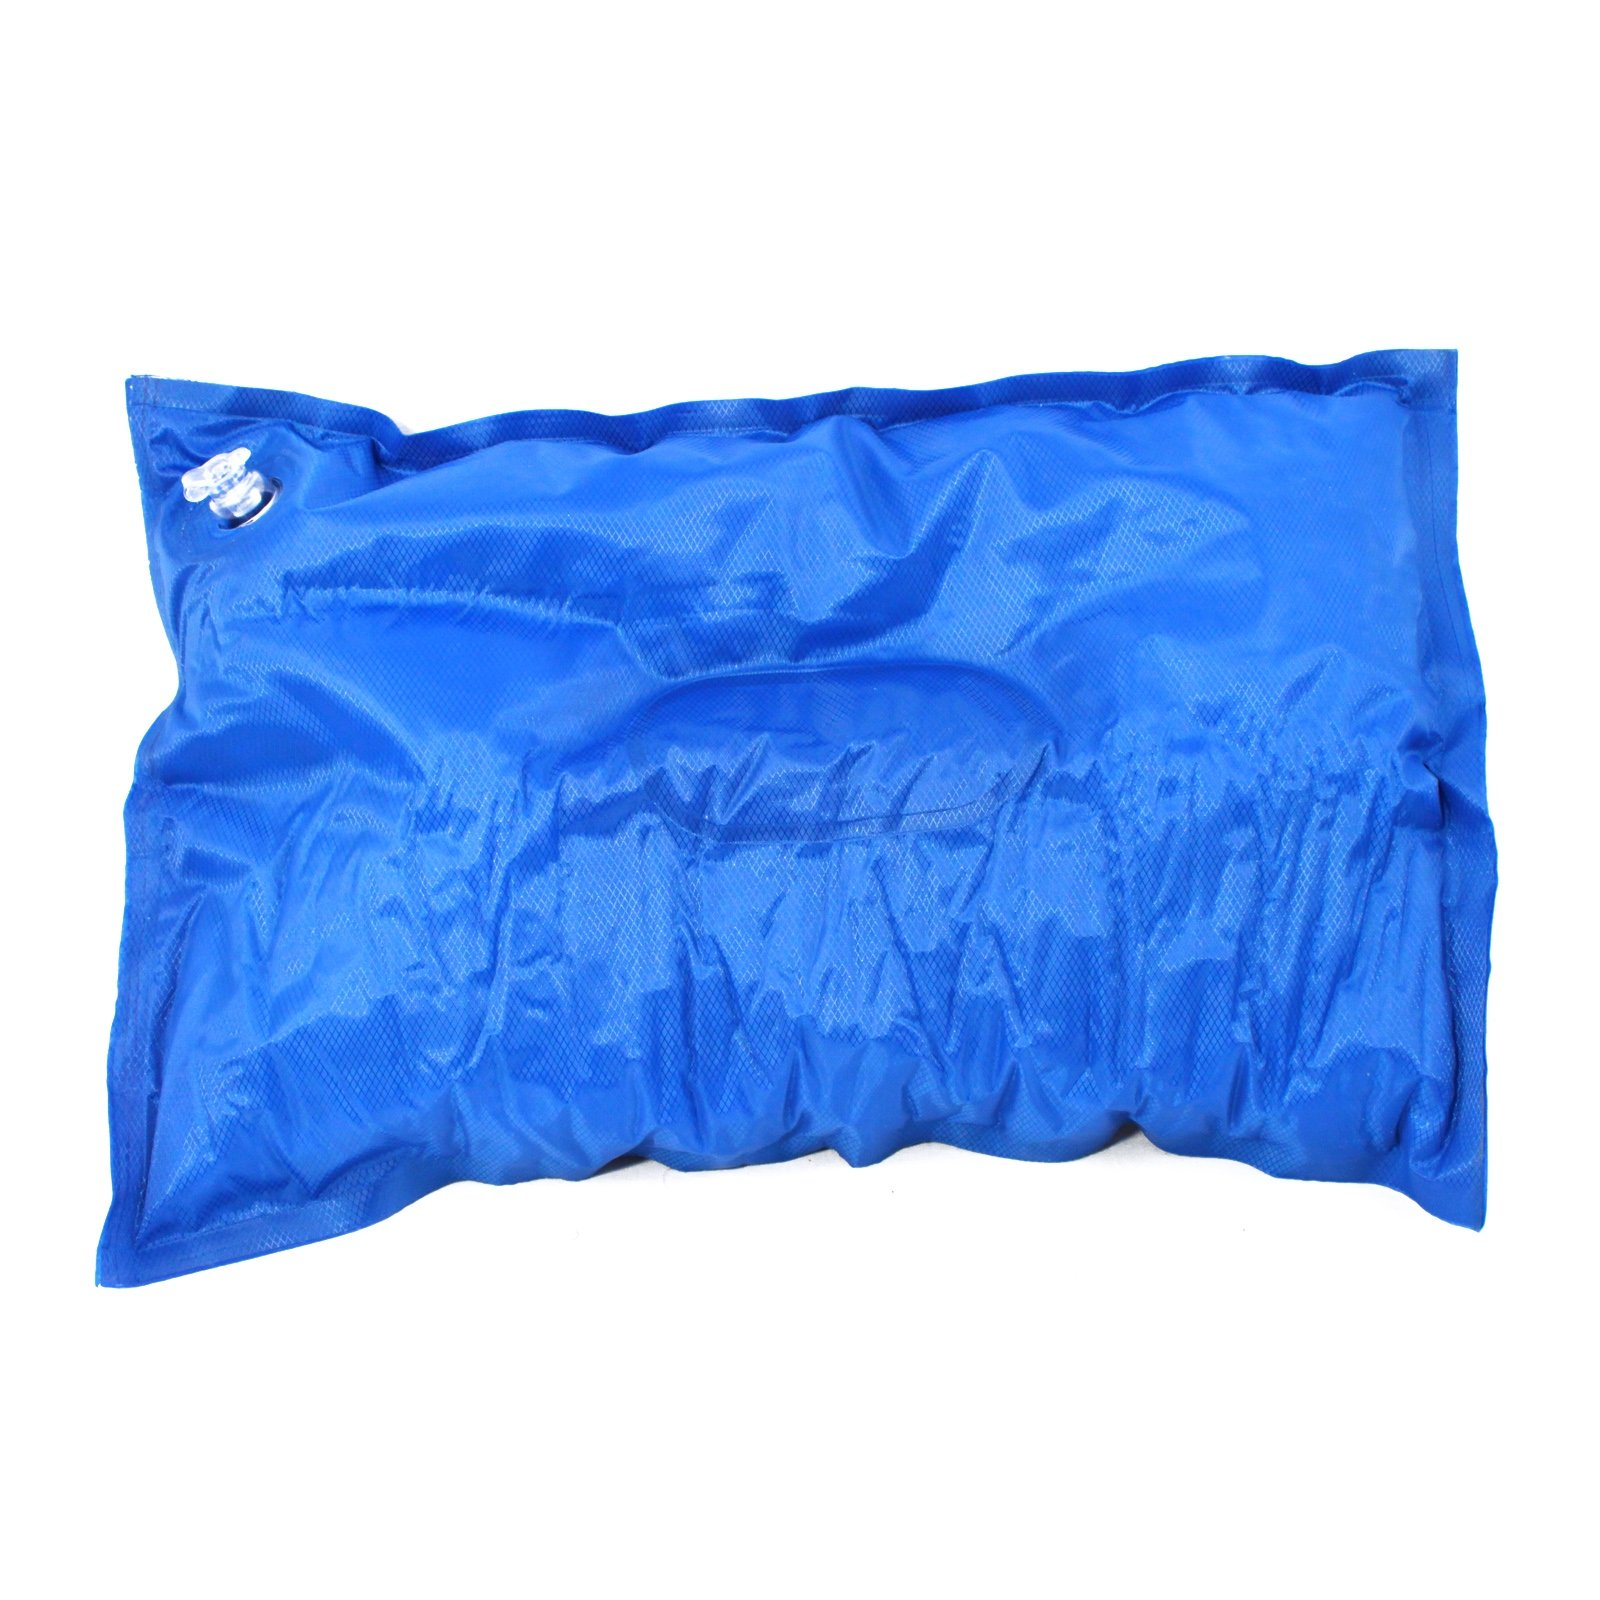 ASR Outdoor Inflatable Pillow for Travel, Hiking, and Backpacking